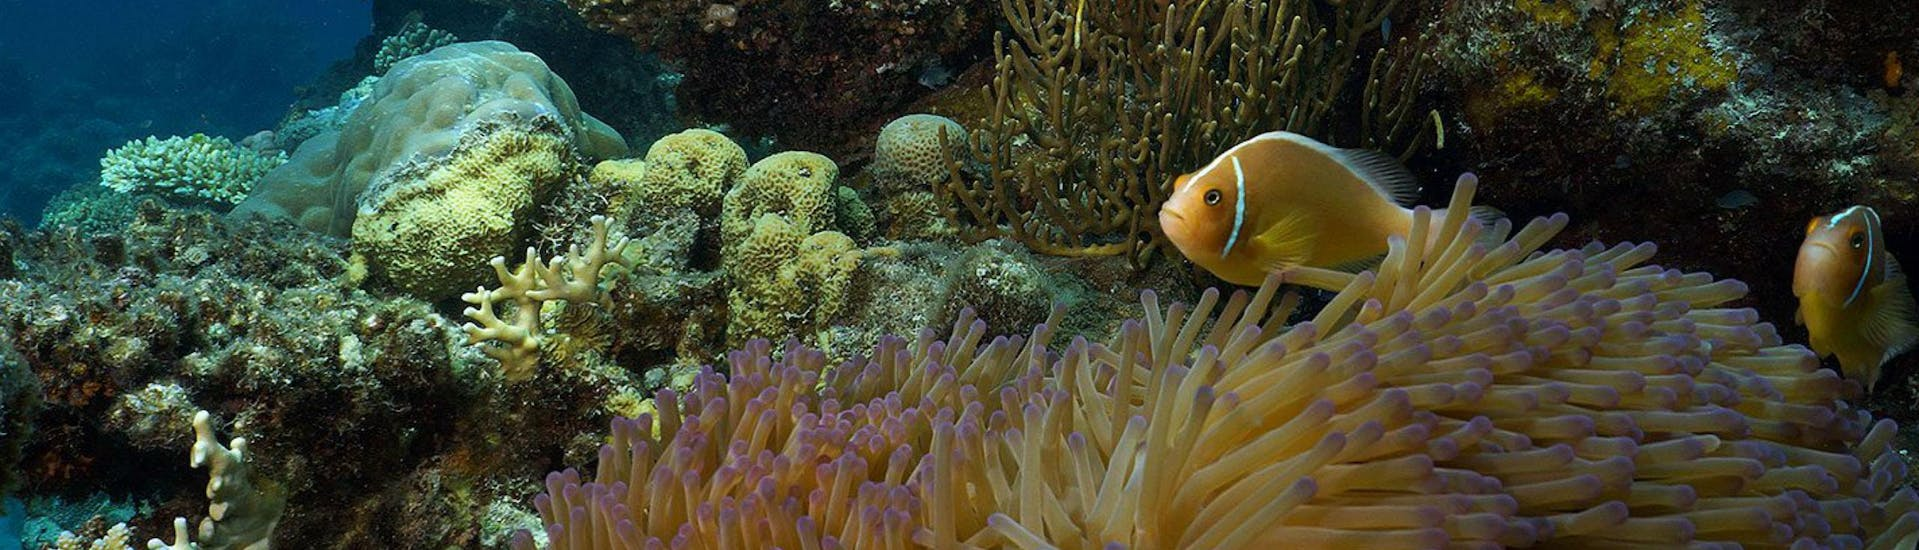 An image of colourful fish swimming around the coral reef that can be seen during the offer Certified Scuba Diving at the Great Barrier Reef with Ocean Freedom.